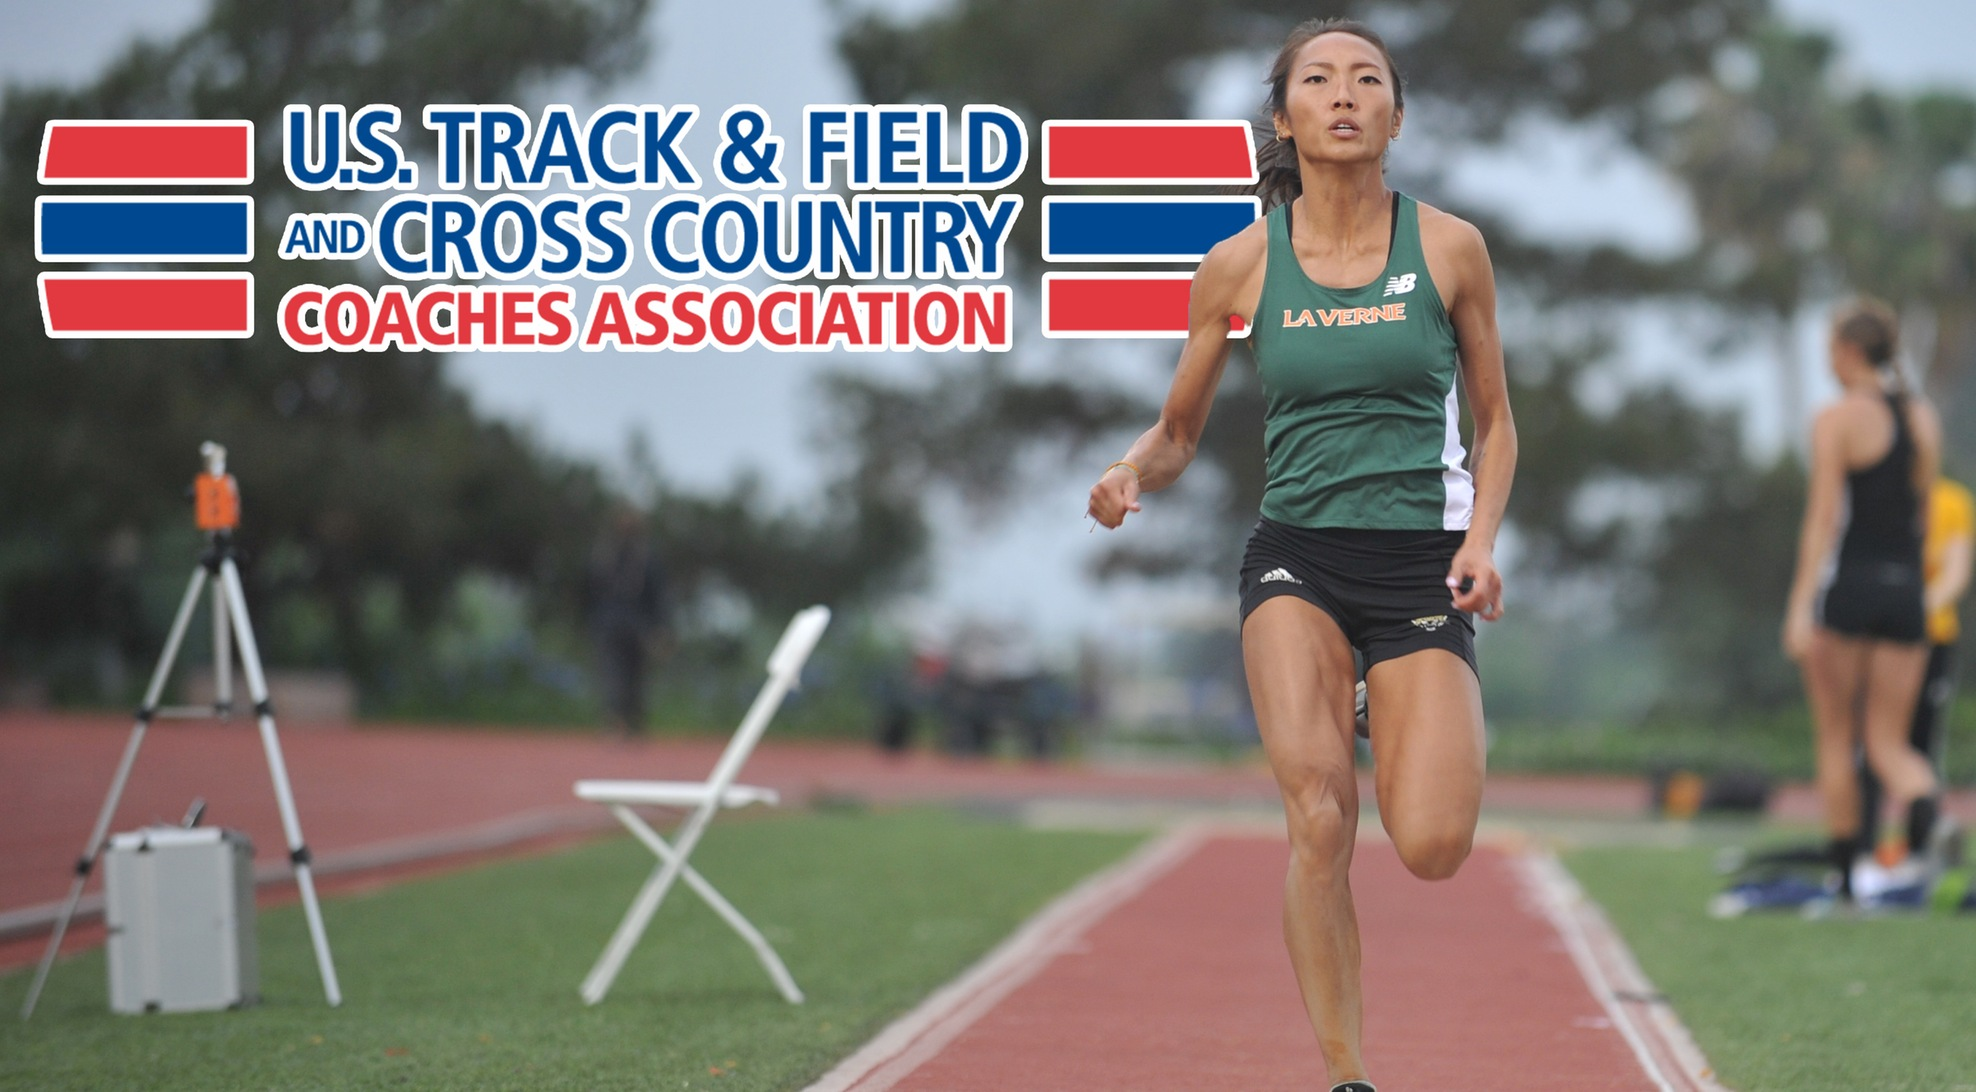 Lee Kim earns USTFCCCA All-Academic honors